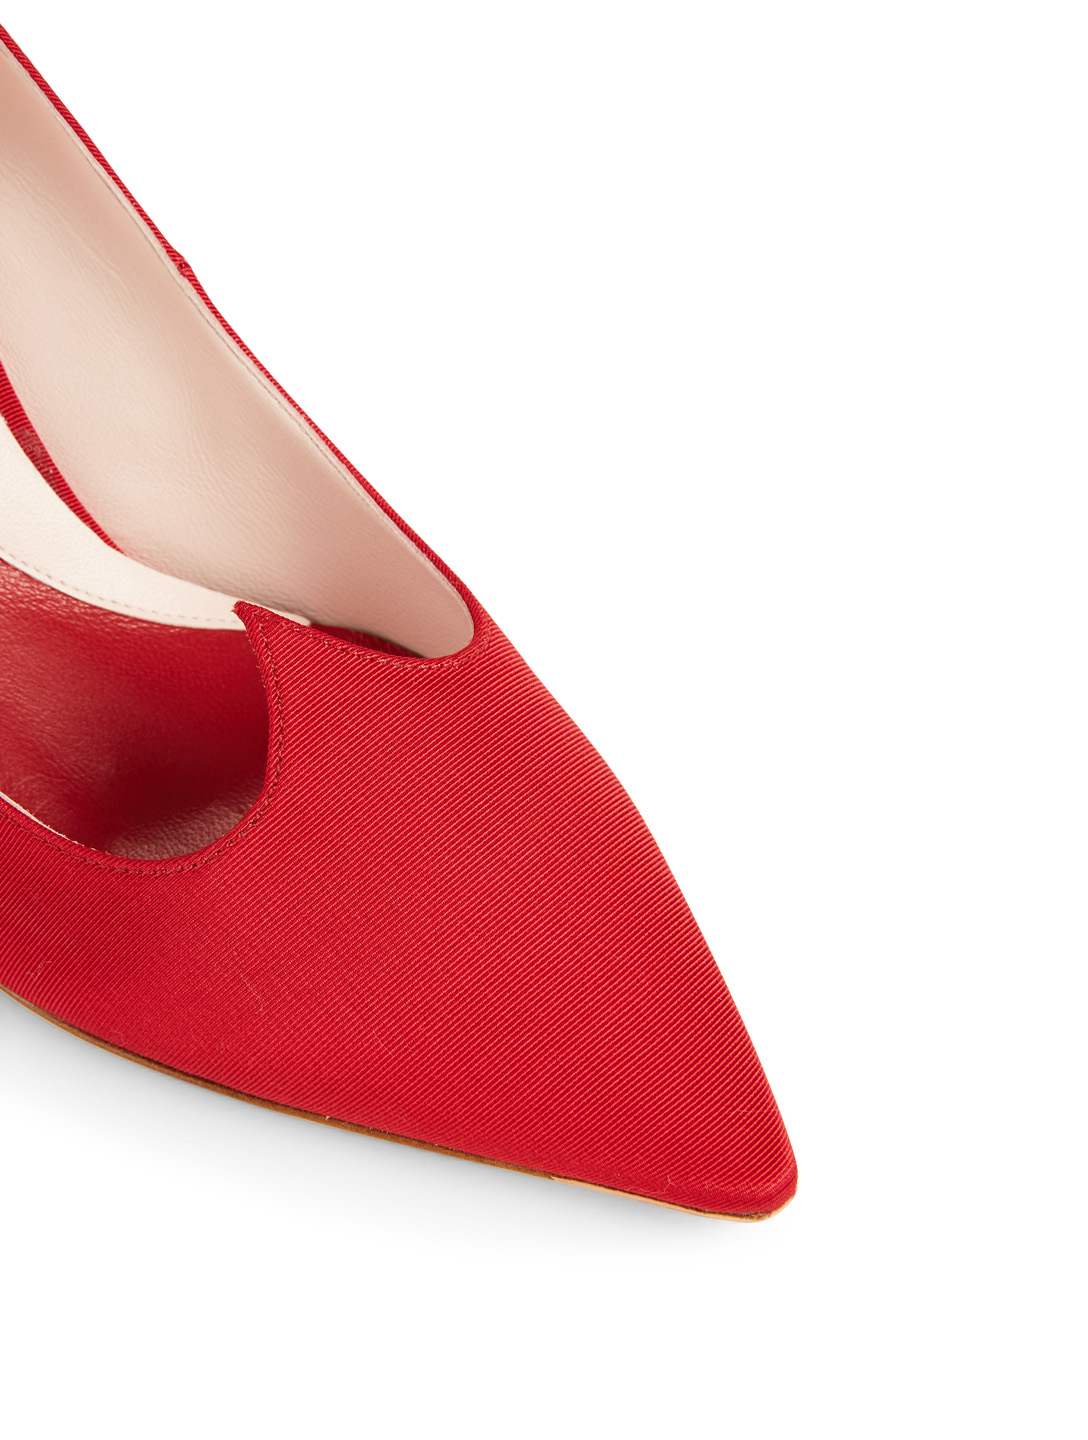 2937ad3d673f ... ROGER VIVIER I Love Vivier Pumps Women s Red